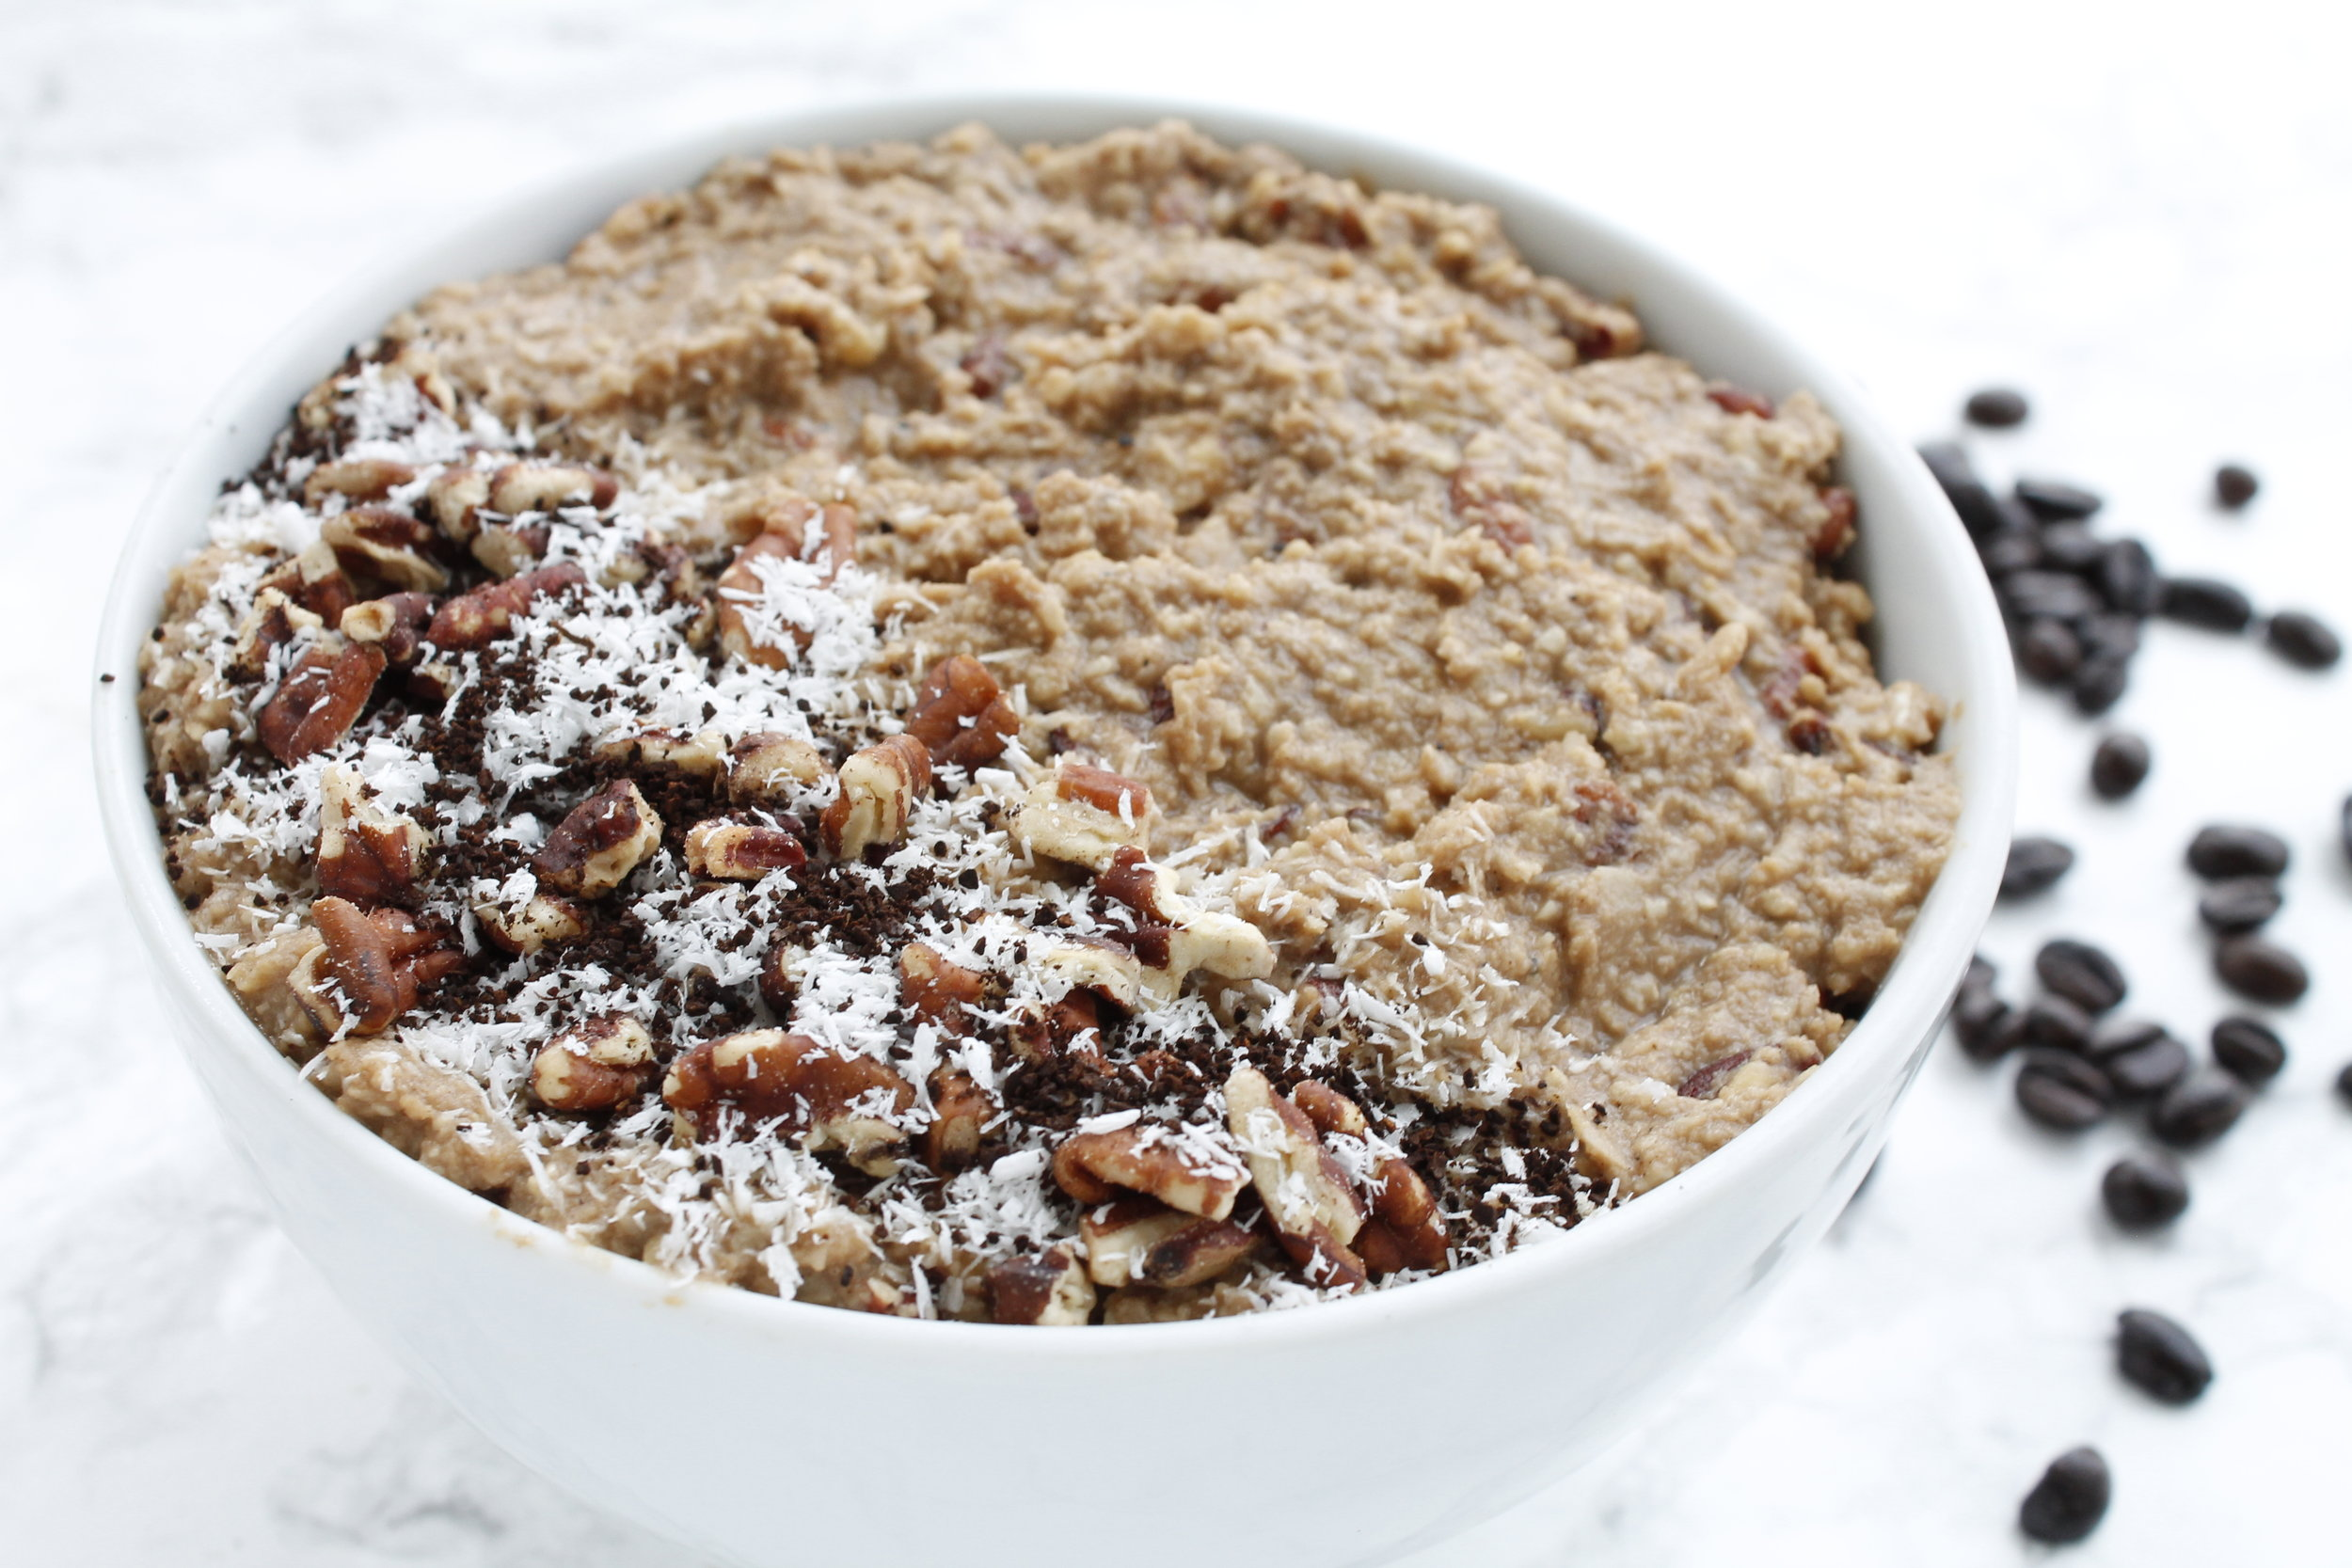 Paleo Coffee No-Oats Oatmeal || This paleo oatmeal is grain free, gluten free, dairy free, refined sugar free AND Specific Carbohydrate Diet friendly! The perfect paleo friendy alternative to cozy oats. #specificcarbohydratediet #scddiet #paleooatmeal